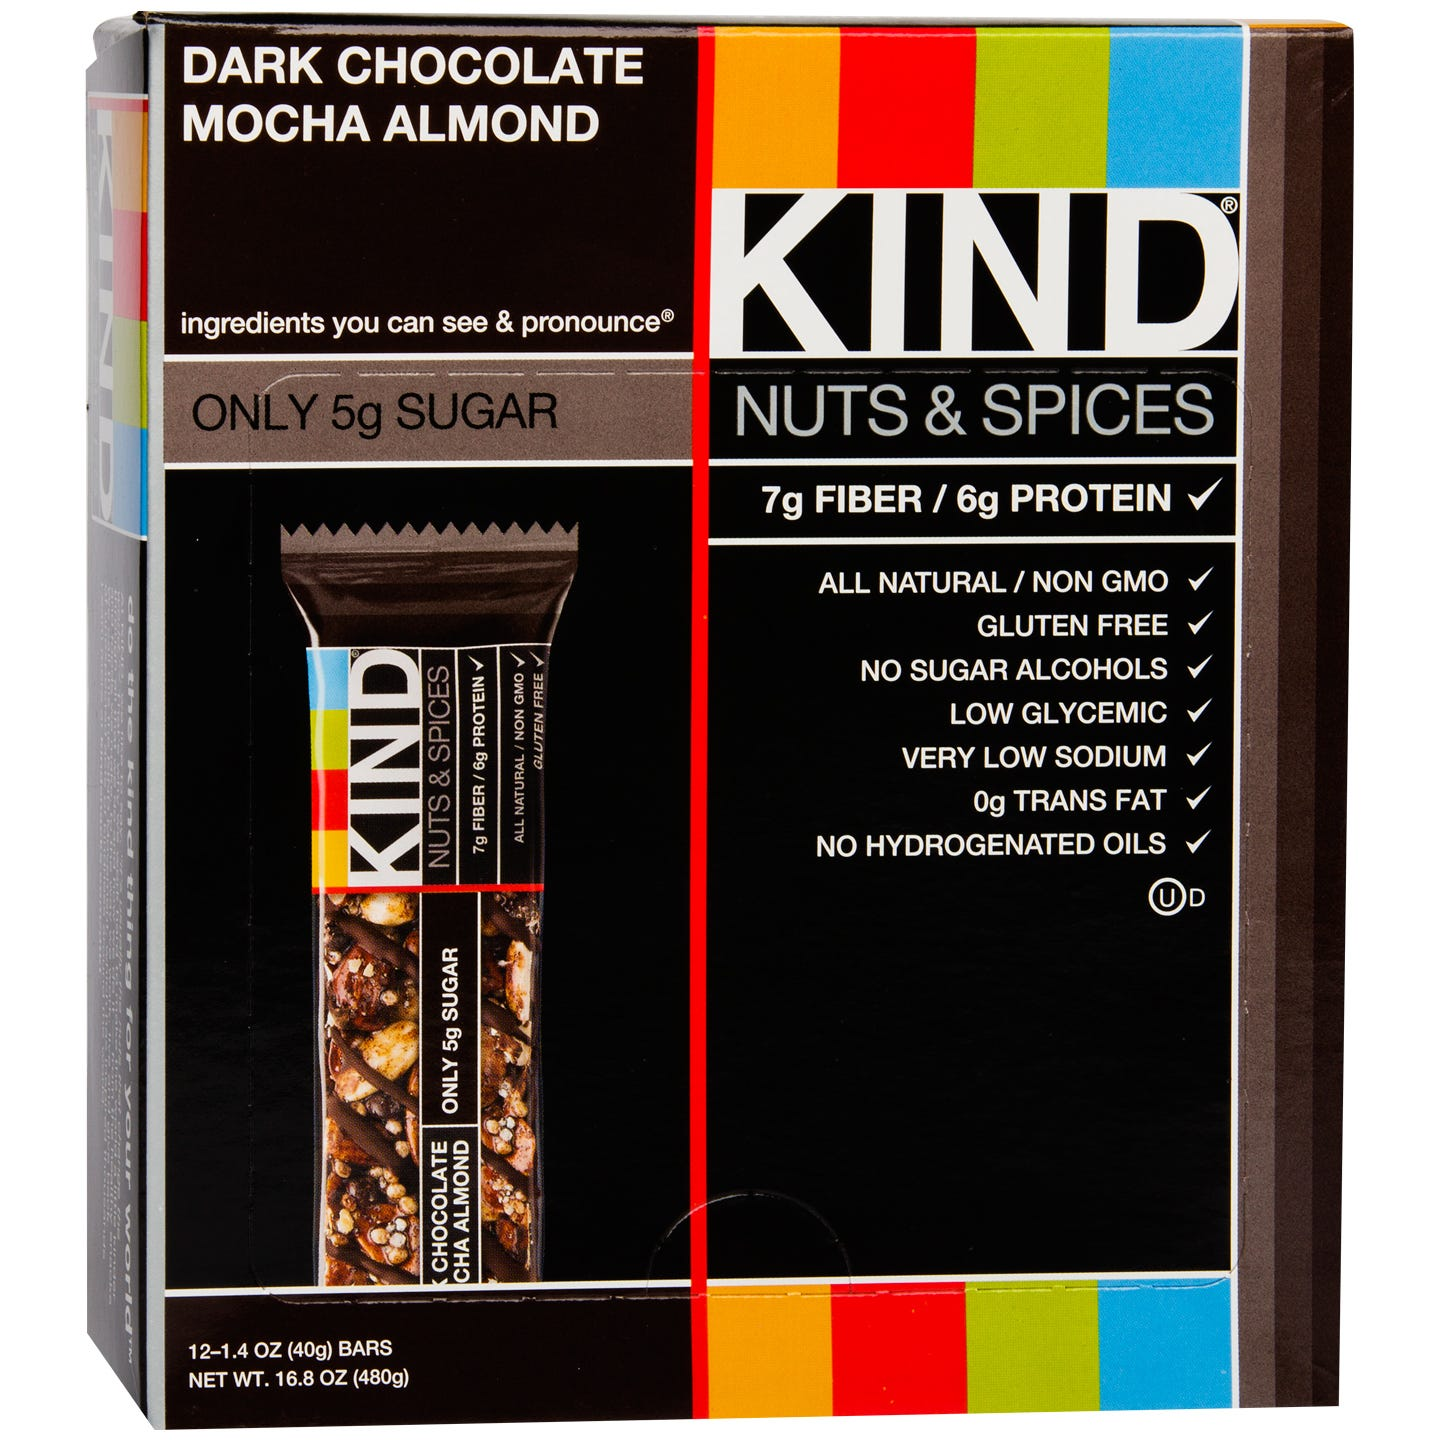 Kind Nuts & Spices Bar Dark Chocolate Mocha Almond (12 ct) - Rapid Diet Weight Loss Products Shop